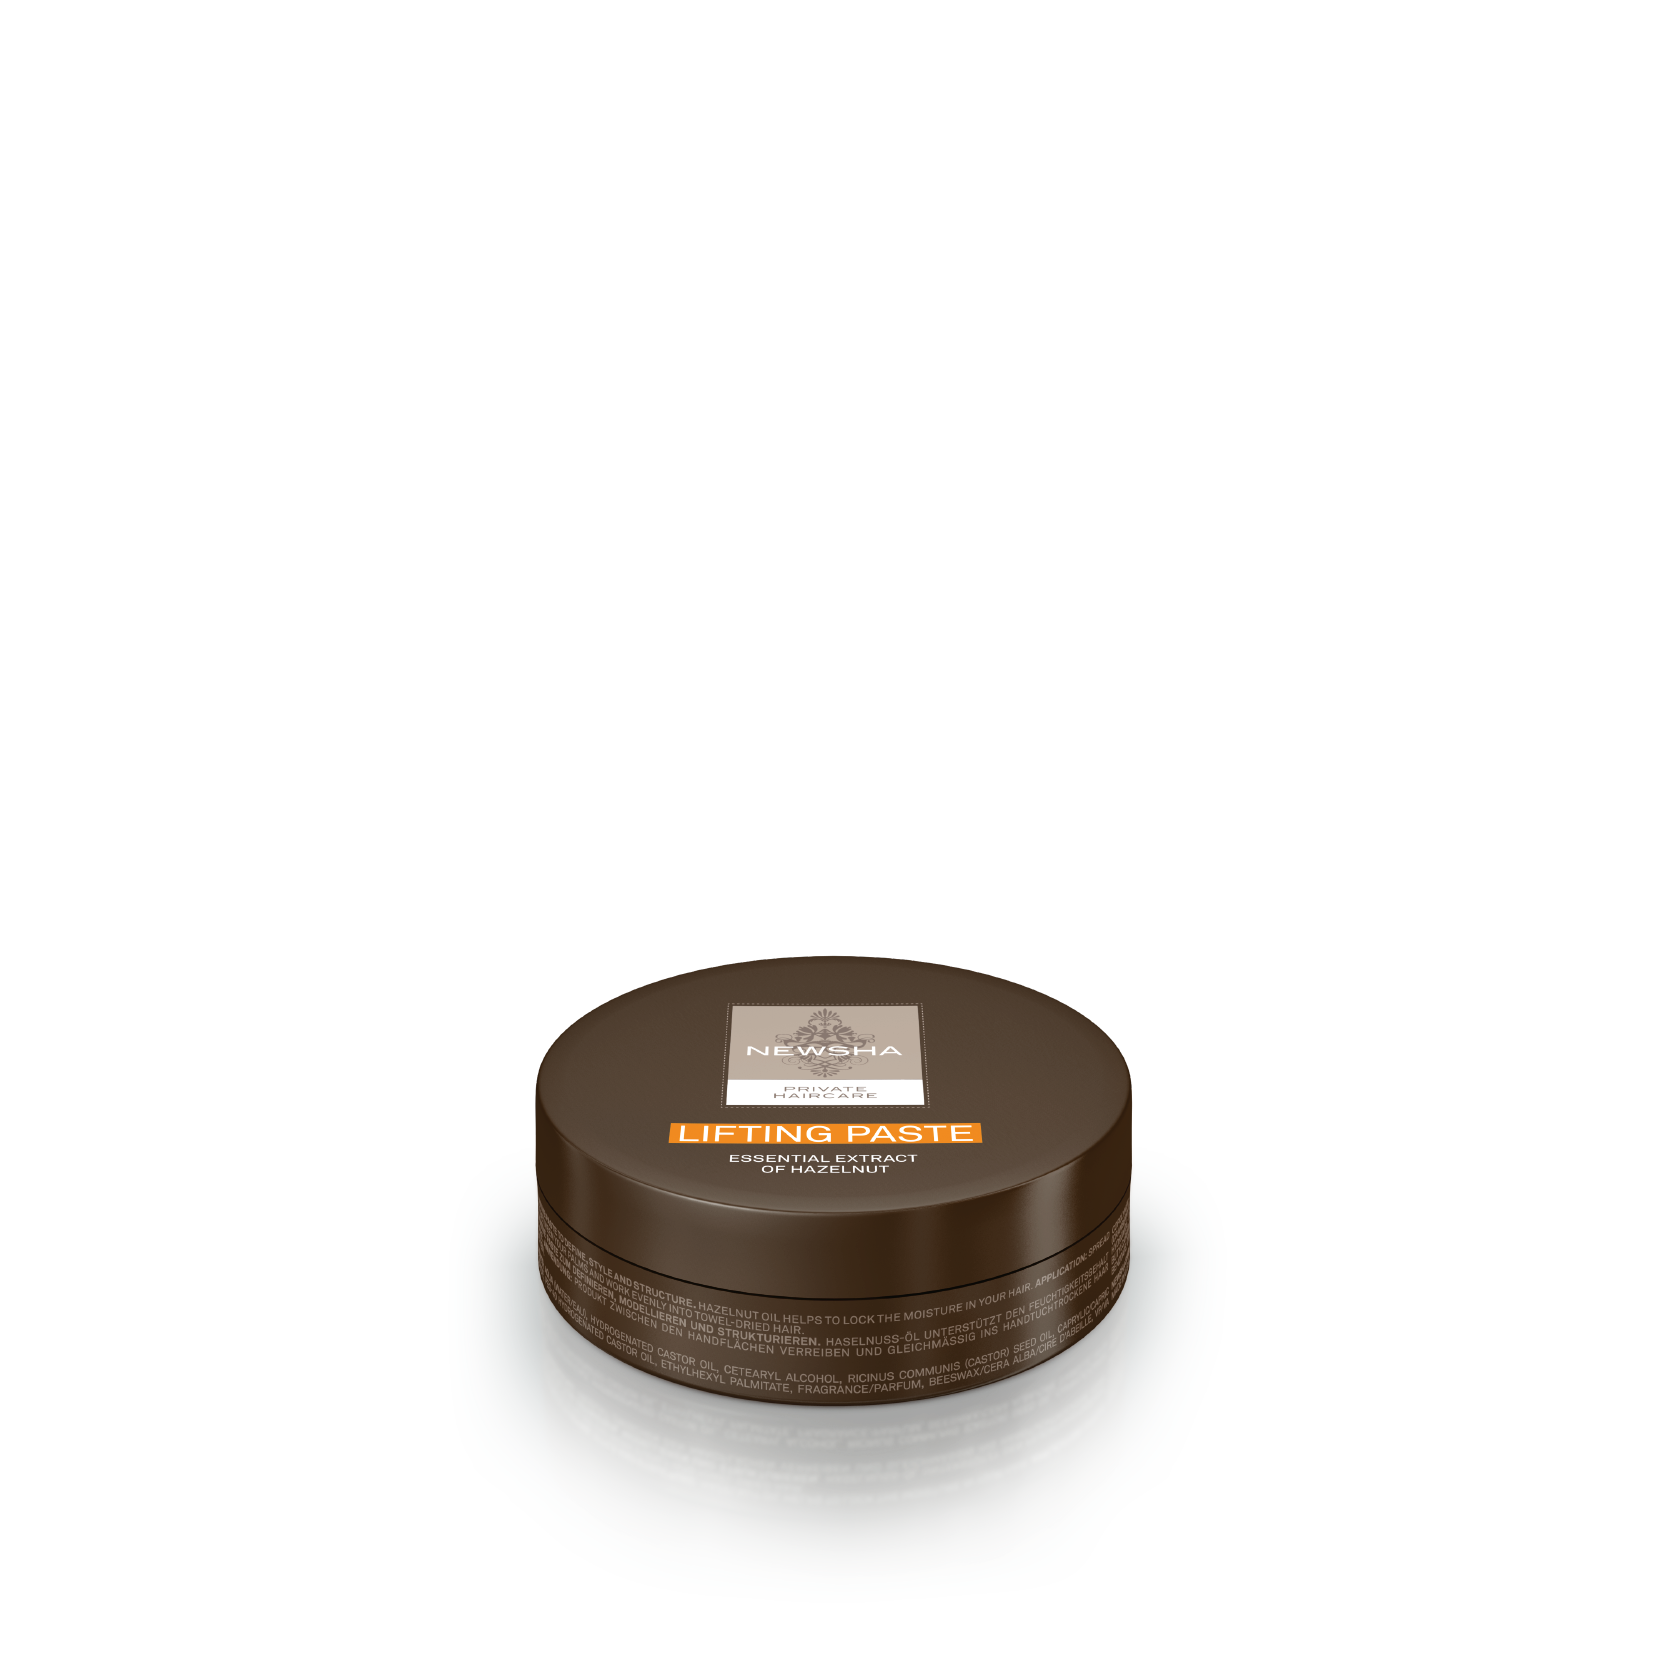 Newsha Product Shots-Lifting Paste.png